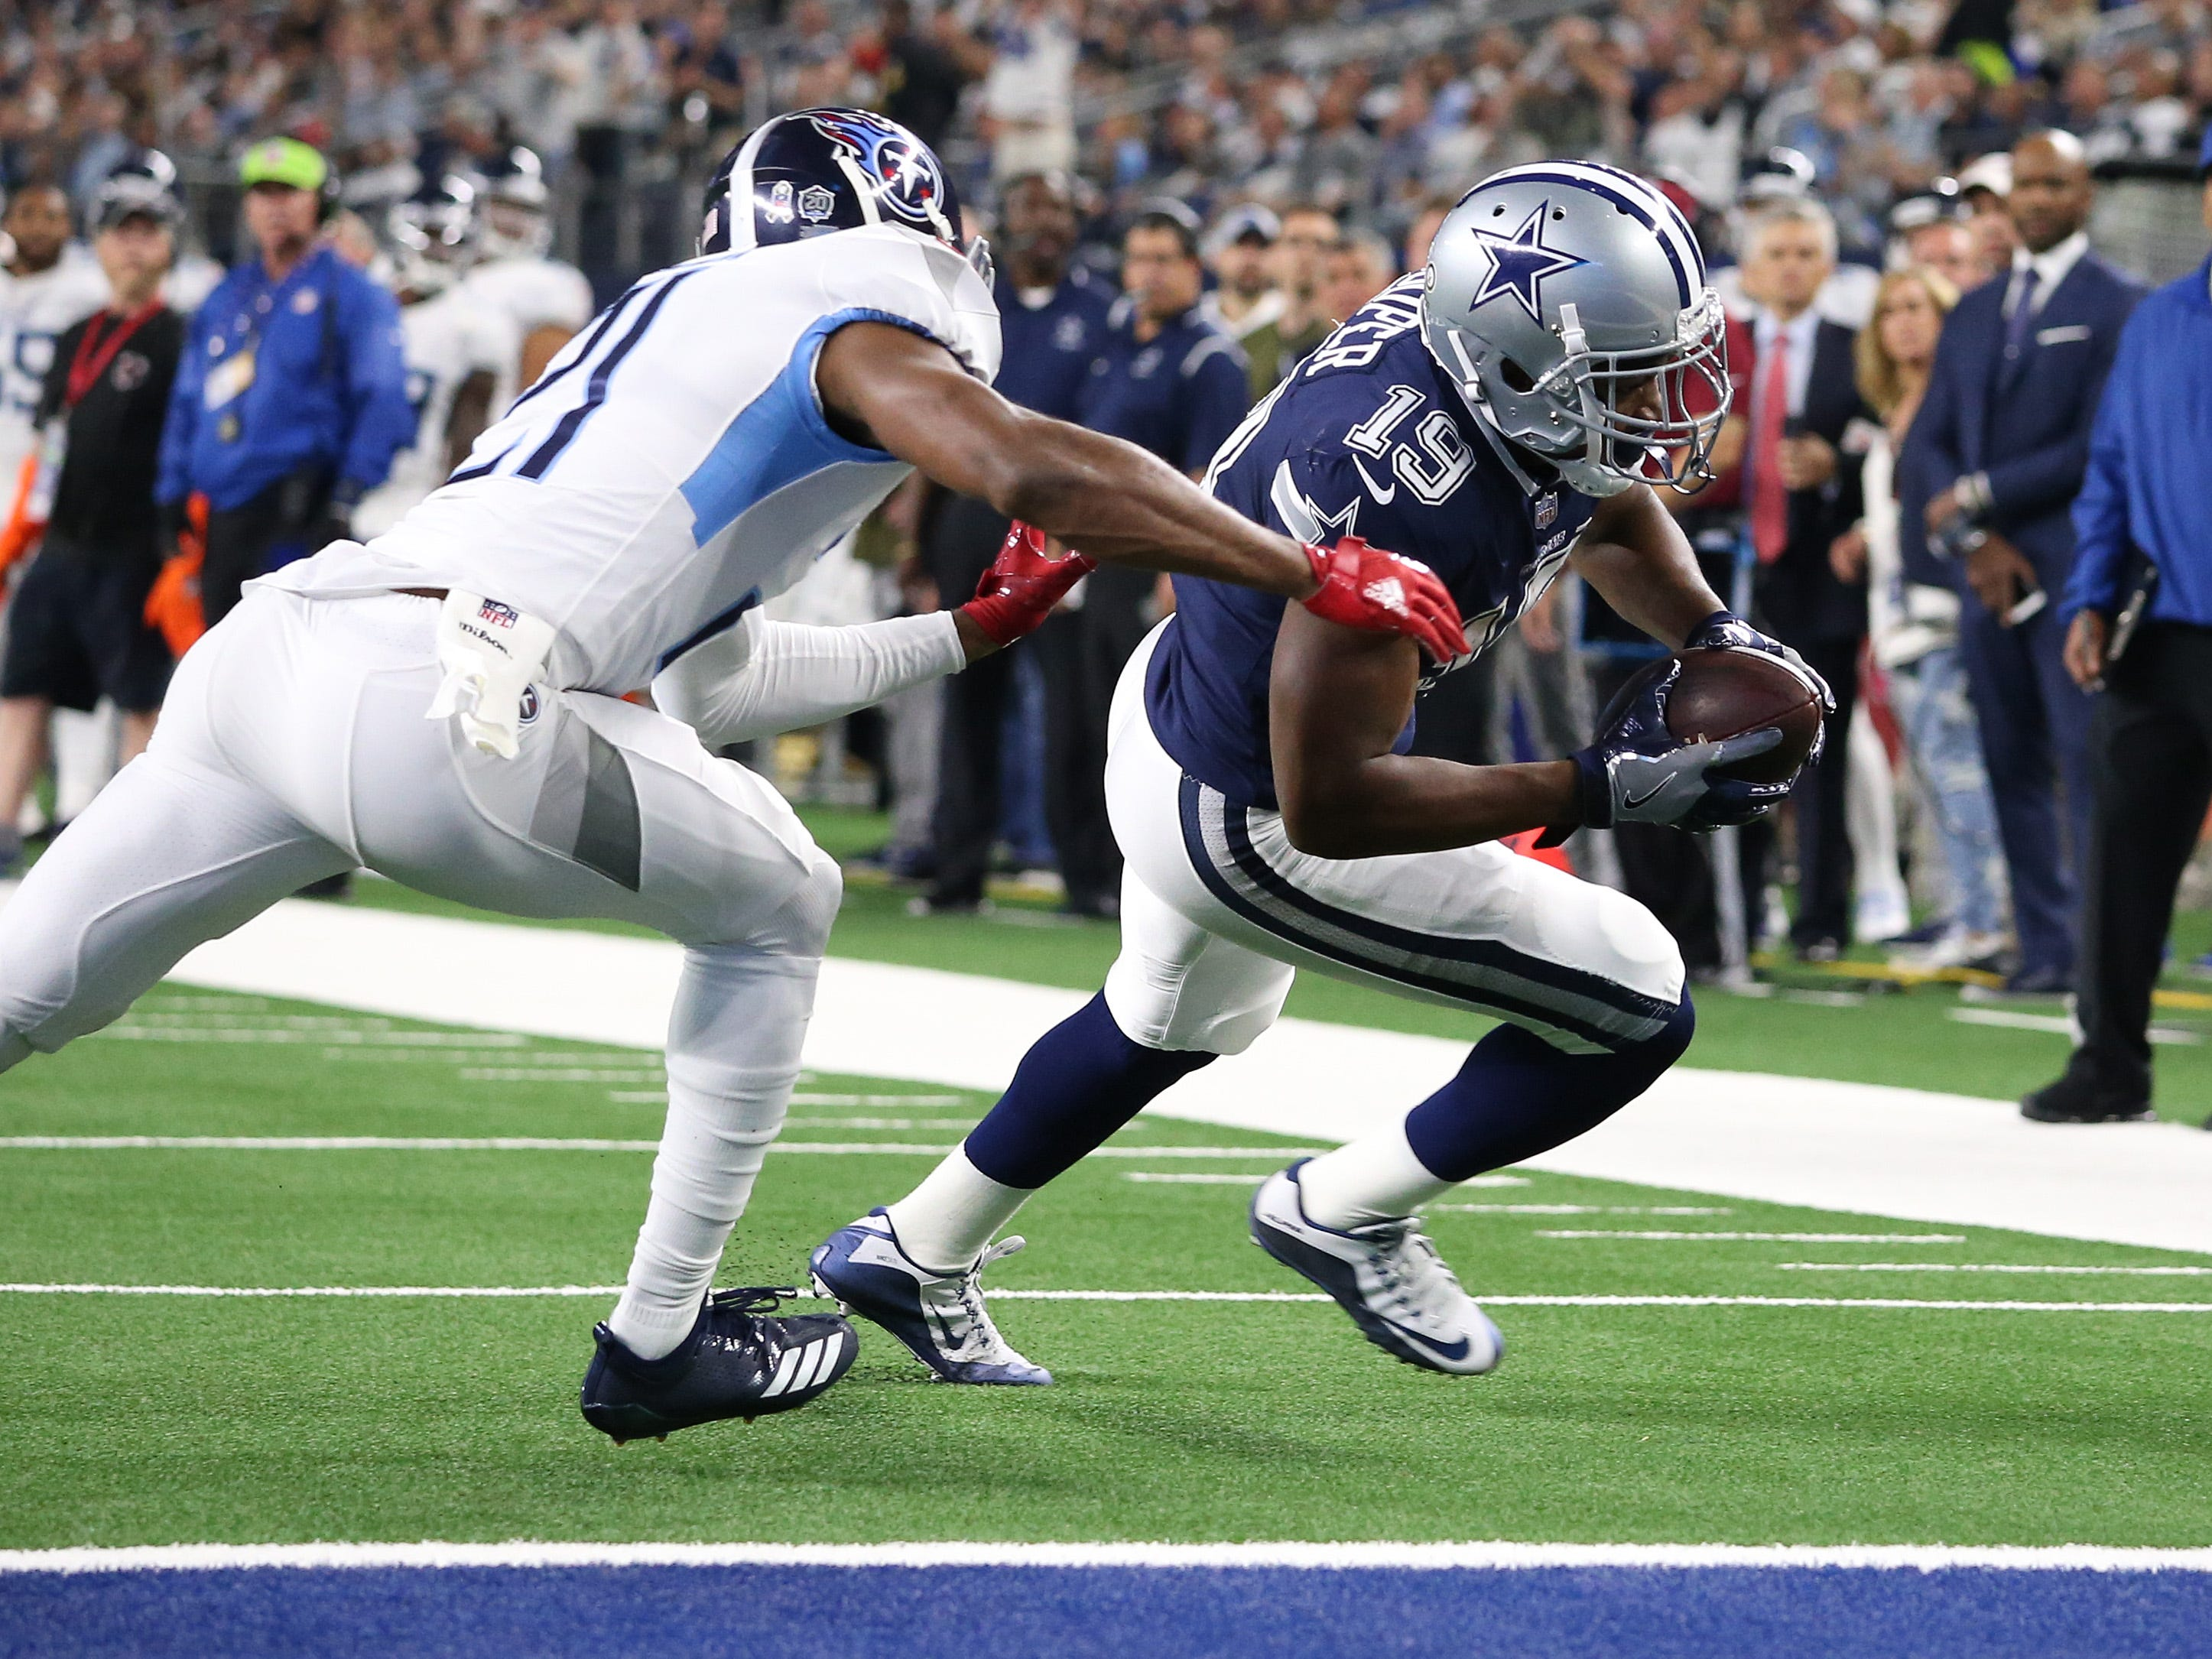 21. Cowboys (18): Just one game, but addition of WR Amari Cooper did little to mask this offense's bigger issues — Dak's limitations and line's struggles.